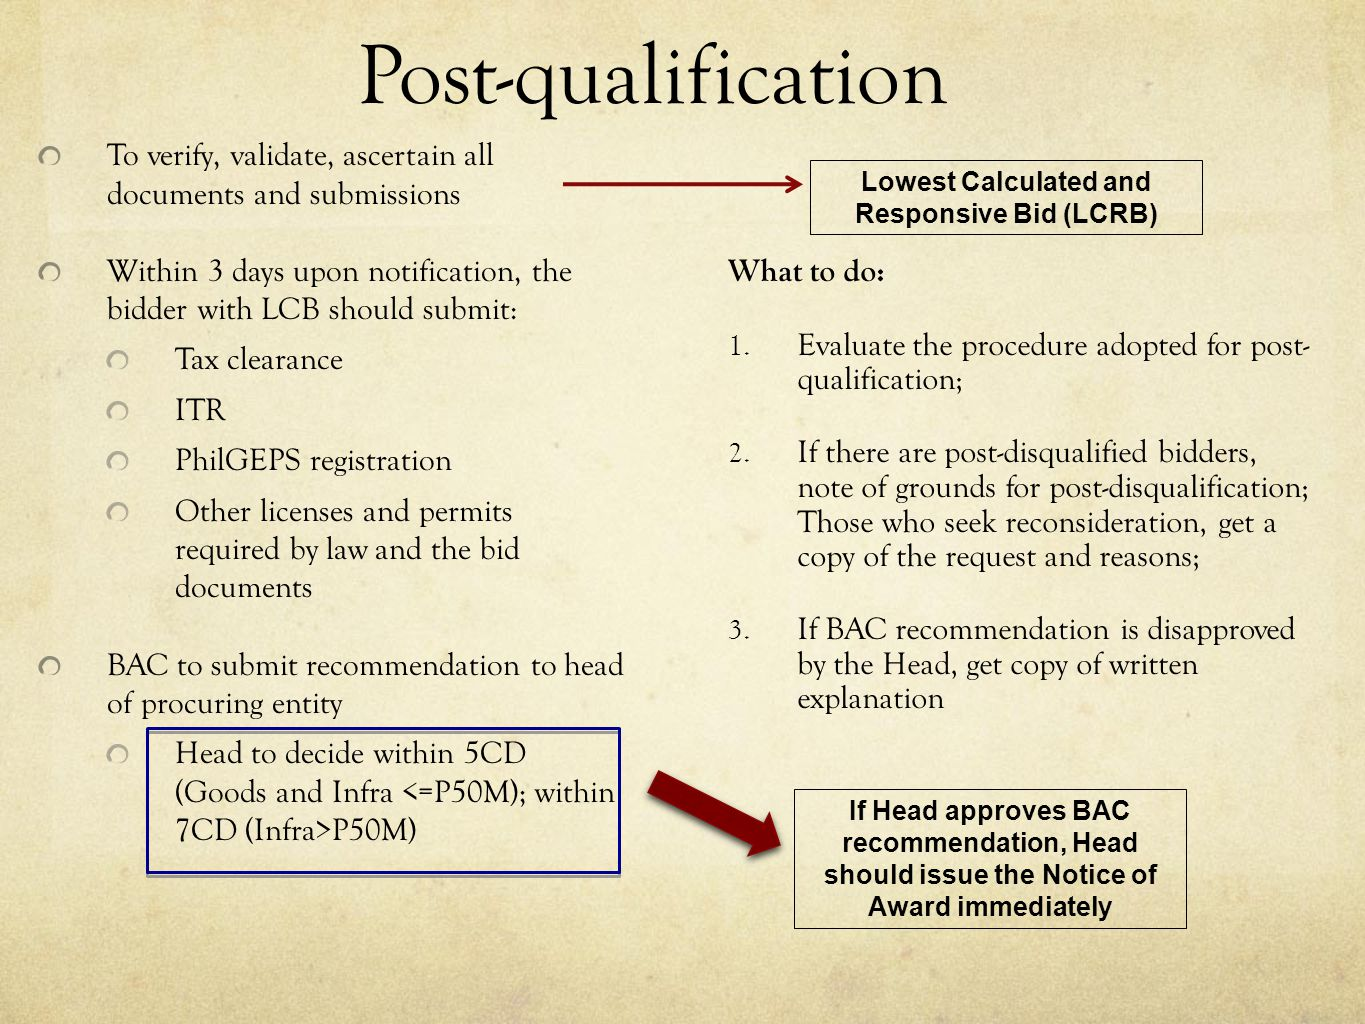 Post-qualification To verify, validate, ascertain all documents and submissions Within 3 days upon notification, the bidder with LCB should submit: Tax clearance ITR PhilGEPS registration Other licenses and permits required by law and the bid documents BAC to submit recommendation to head of procuring entity Head to decide within 5CD (Goods and Infra P50M) Lowest Calculated and Responsive Bid (LCRB) What to do: 1.